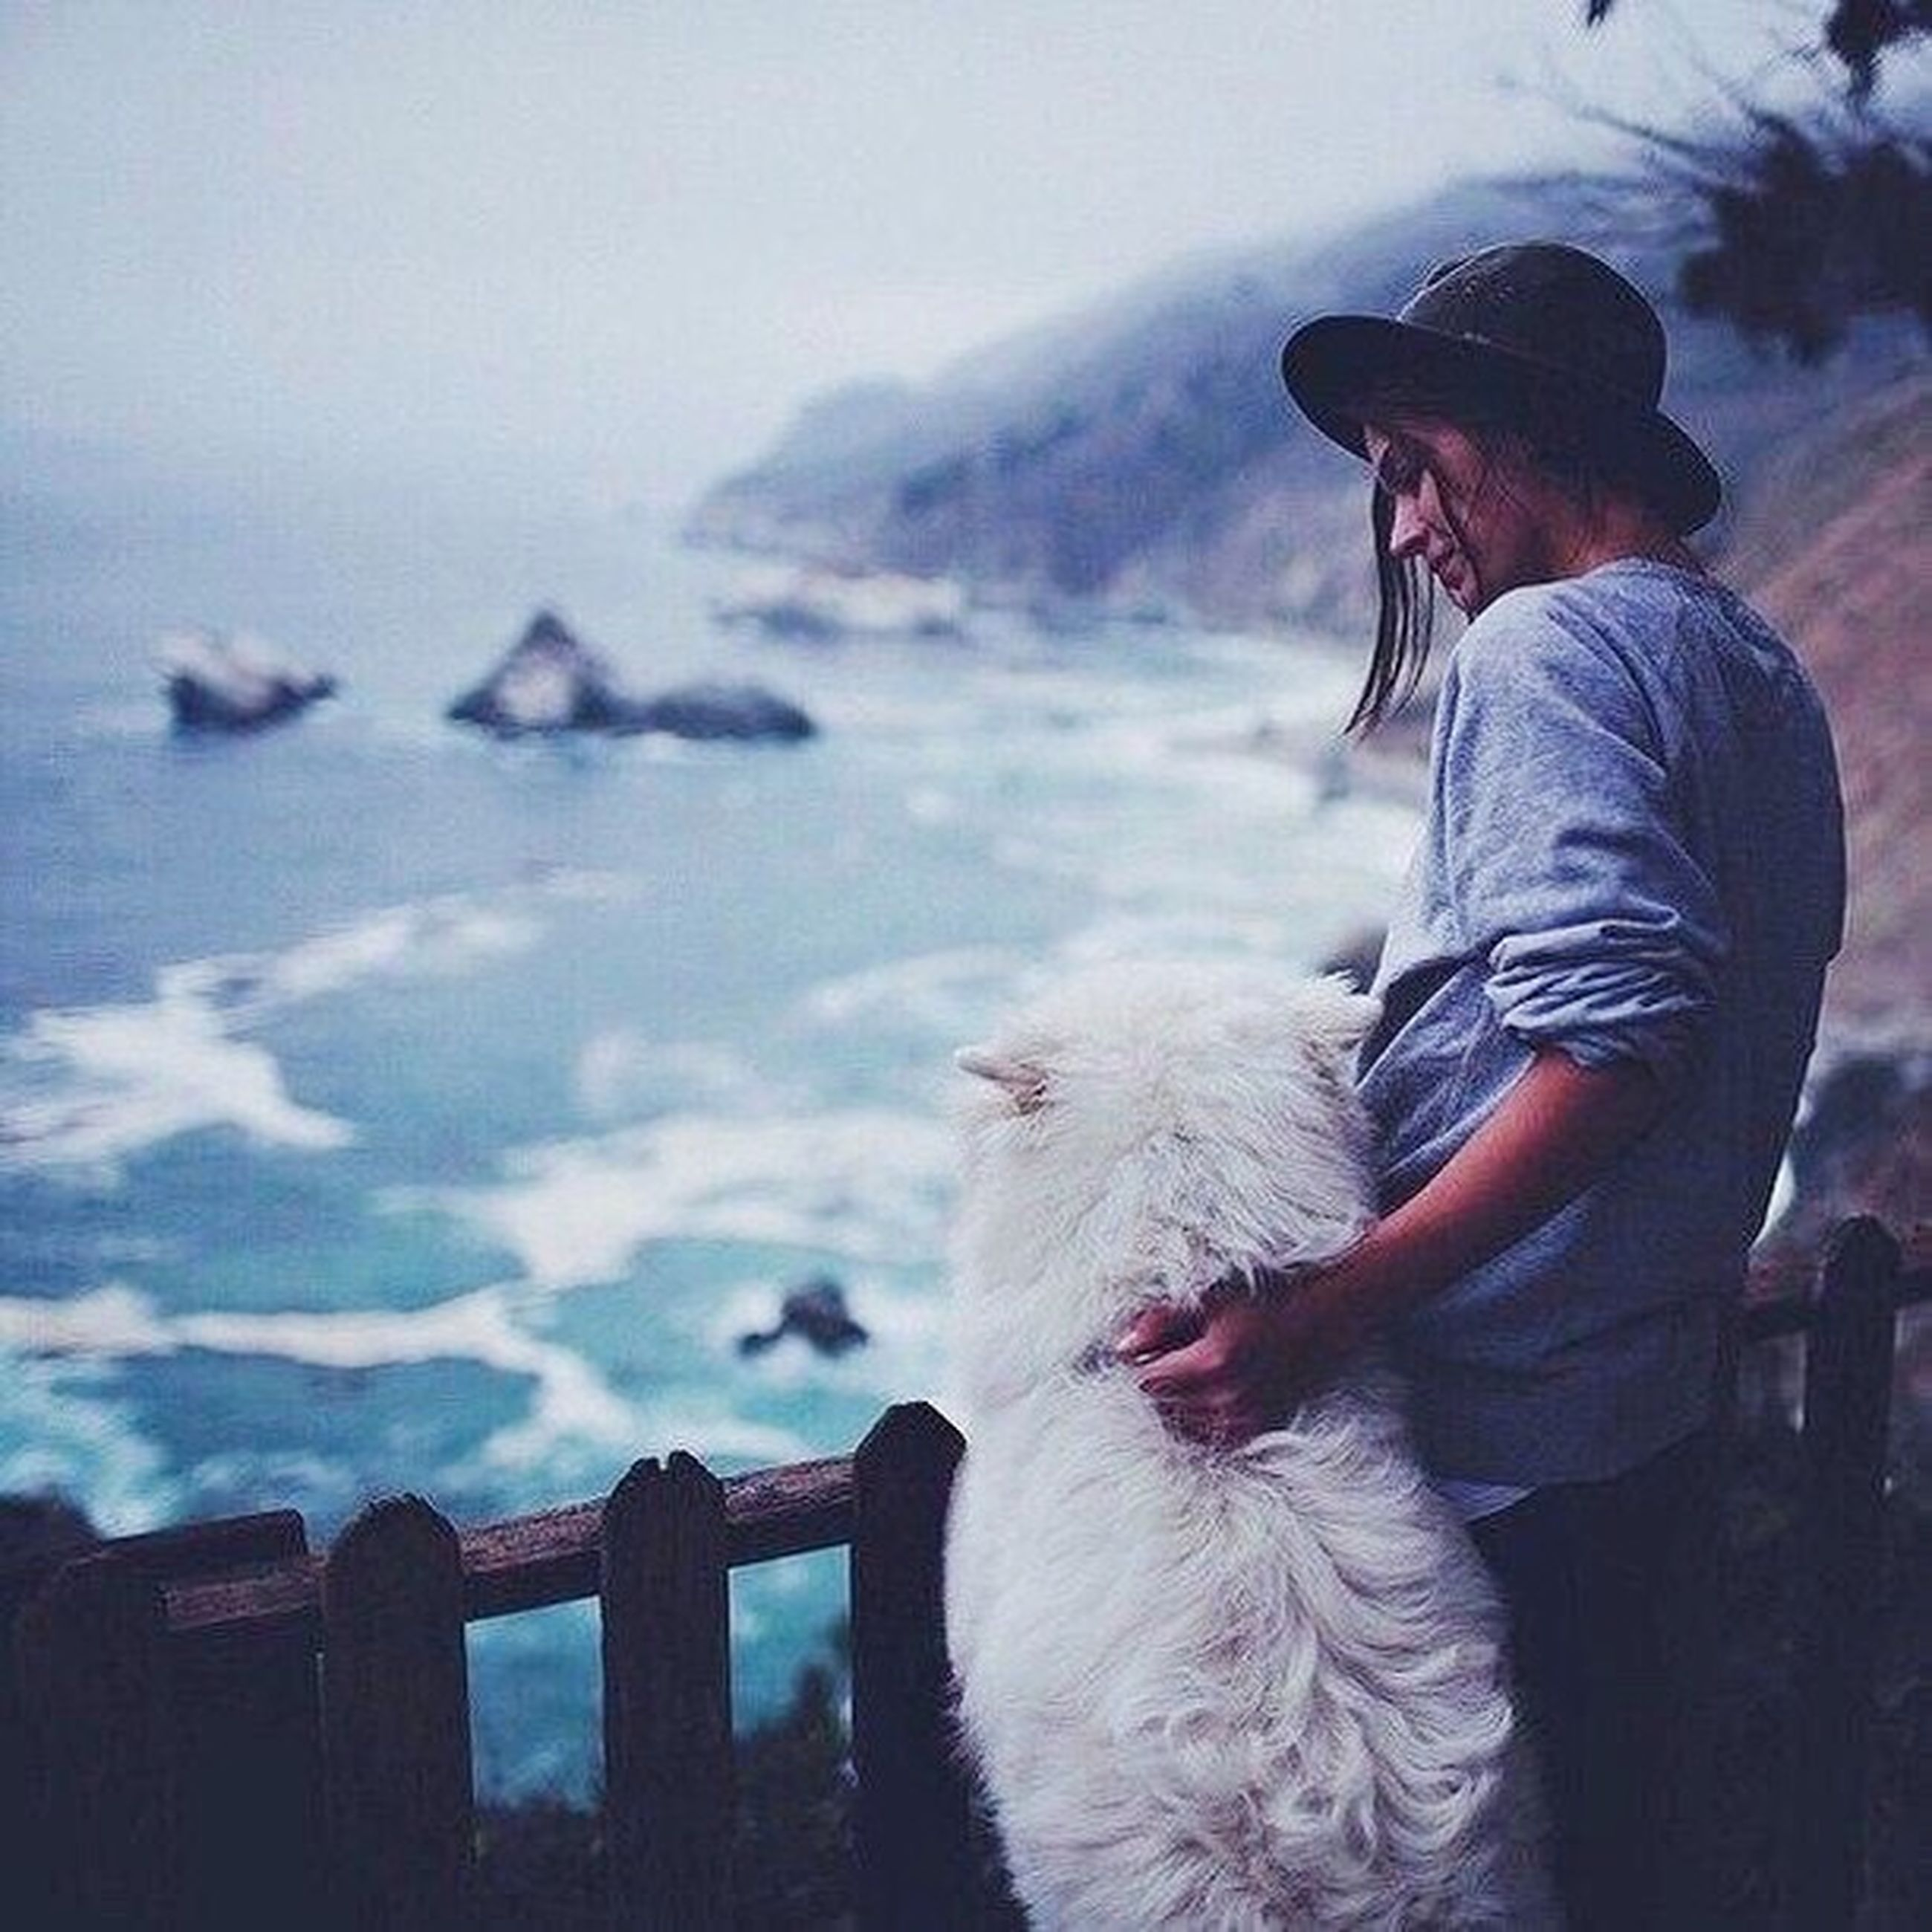 one animal, dog, one person, animal themes, pets, real people, mature adult, leisure activity, outdoors, lifestyles, sea, day, domestic animals, sky, beach, water, nature, mammal, adult, people, one man only, adults only, young adult, only men